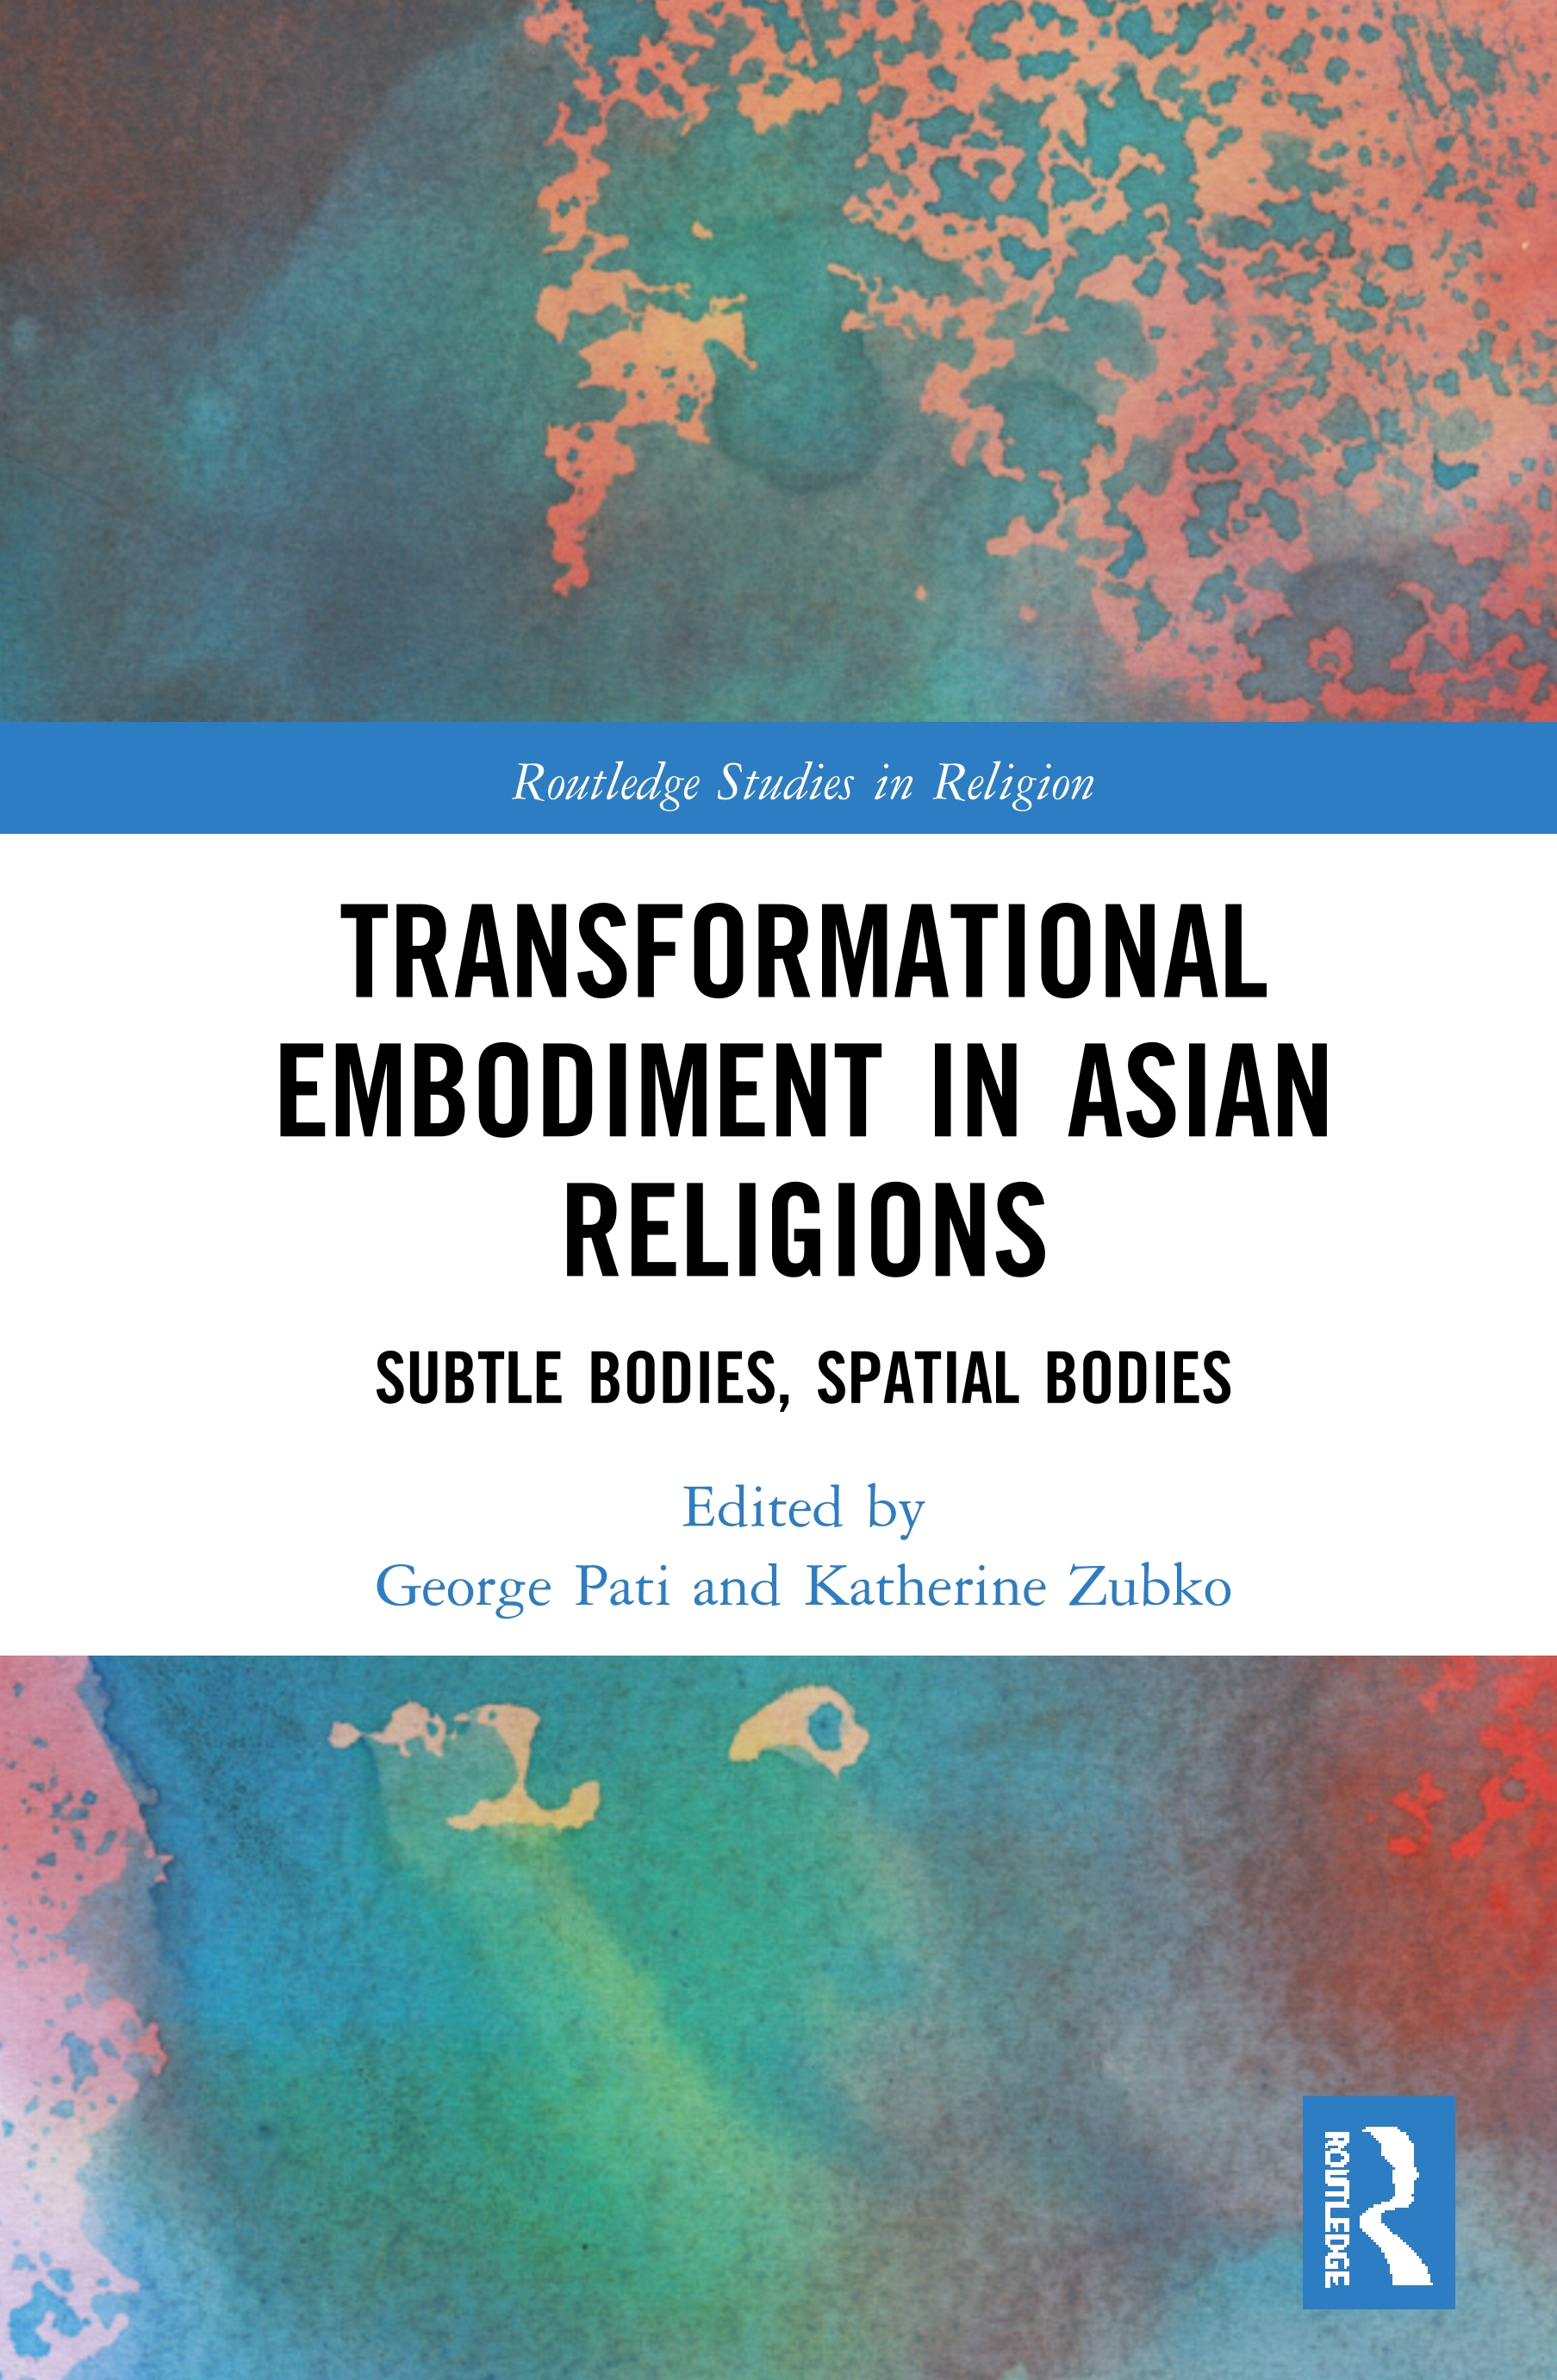 Transformational Embodiment in Asian Religions: Subtle Bodies, Spatial Bodies book cover